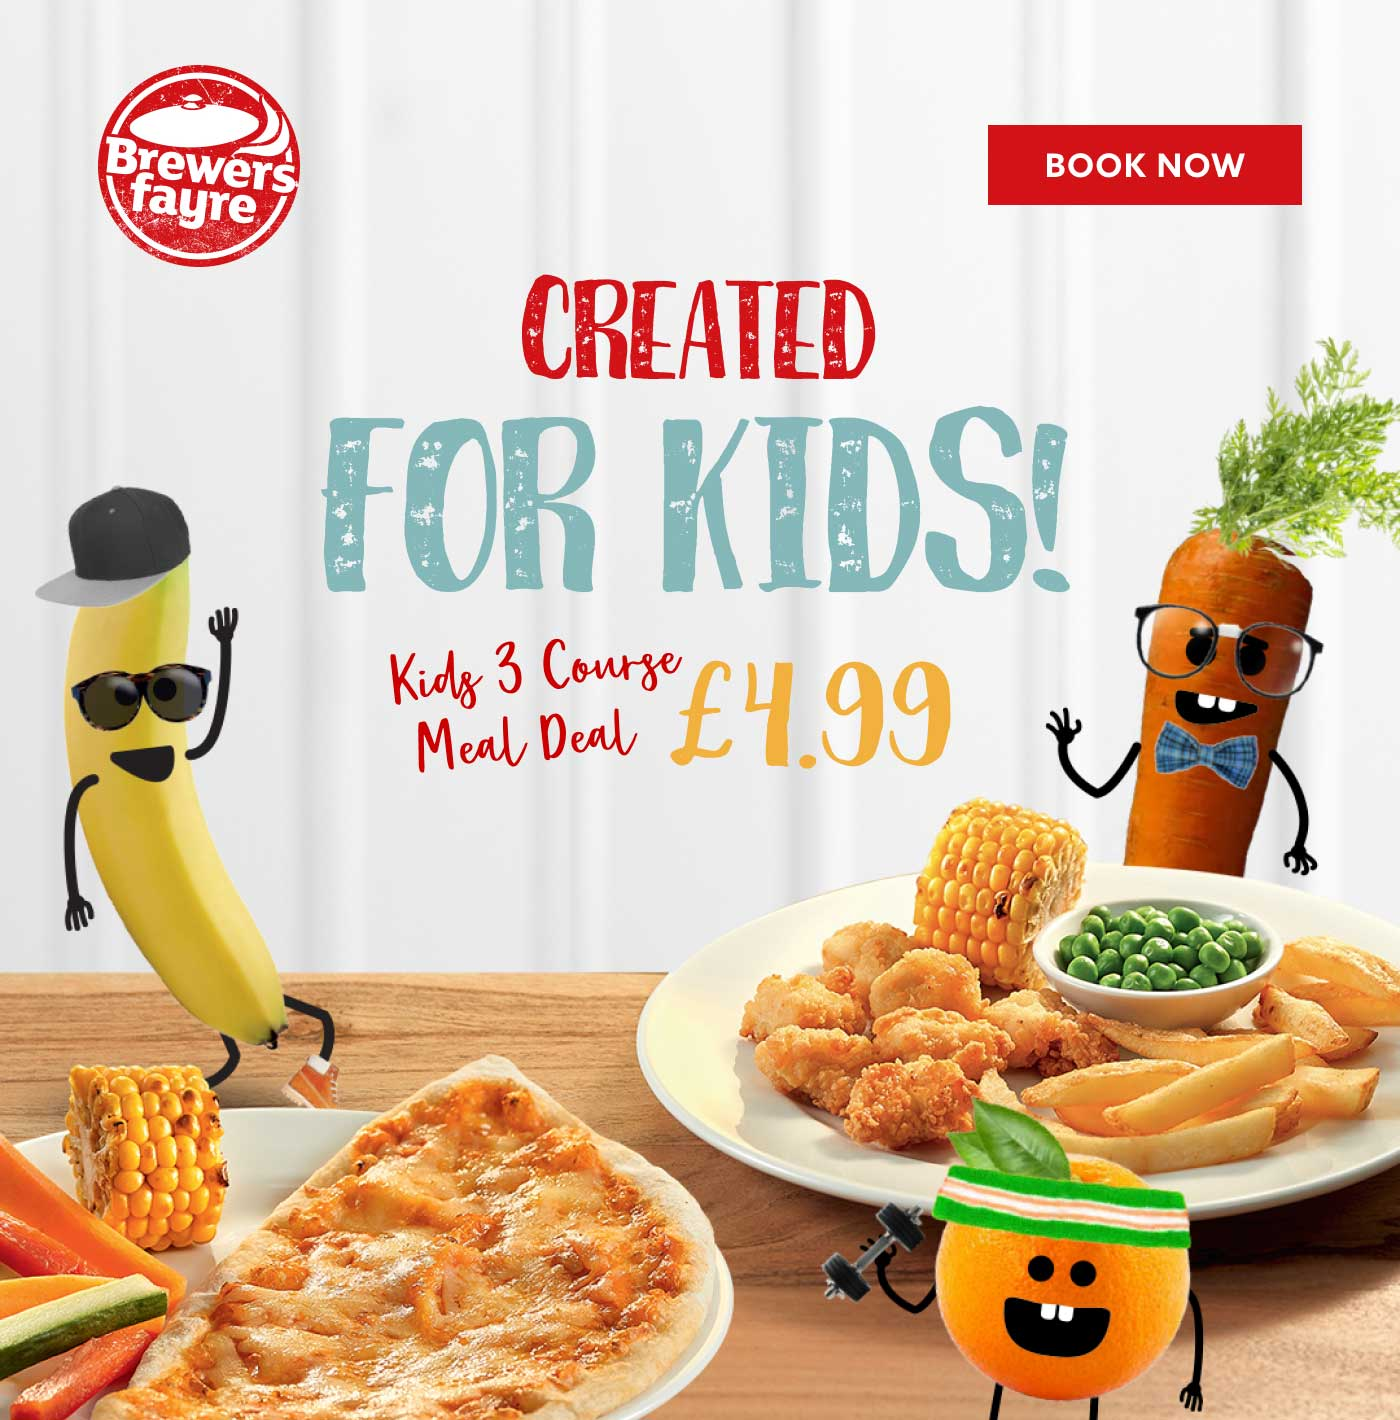 KIDS 3 COURSE MEAL DEAL £4.99